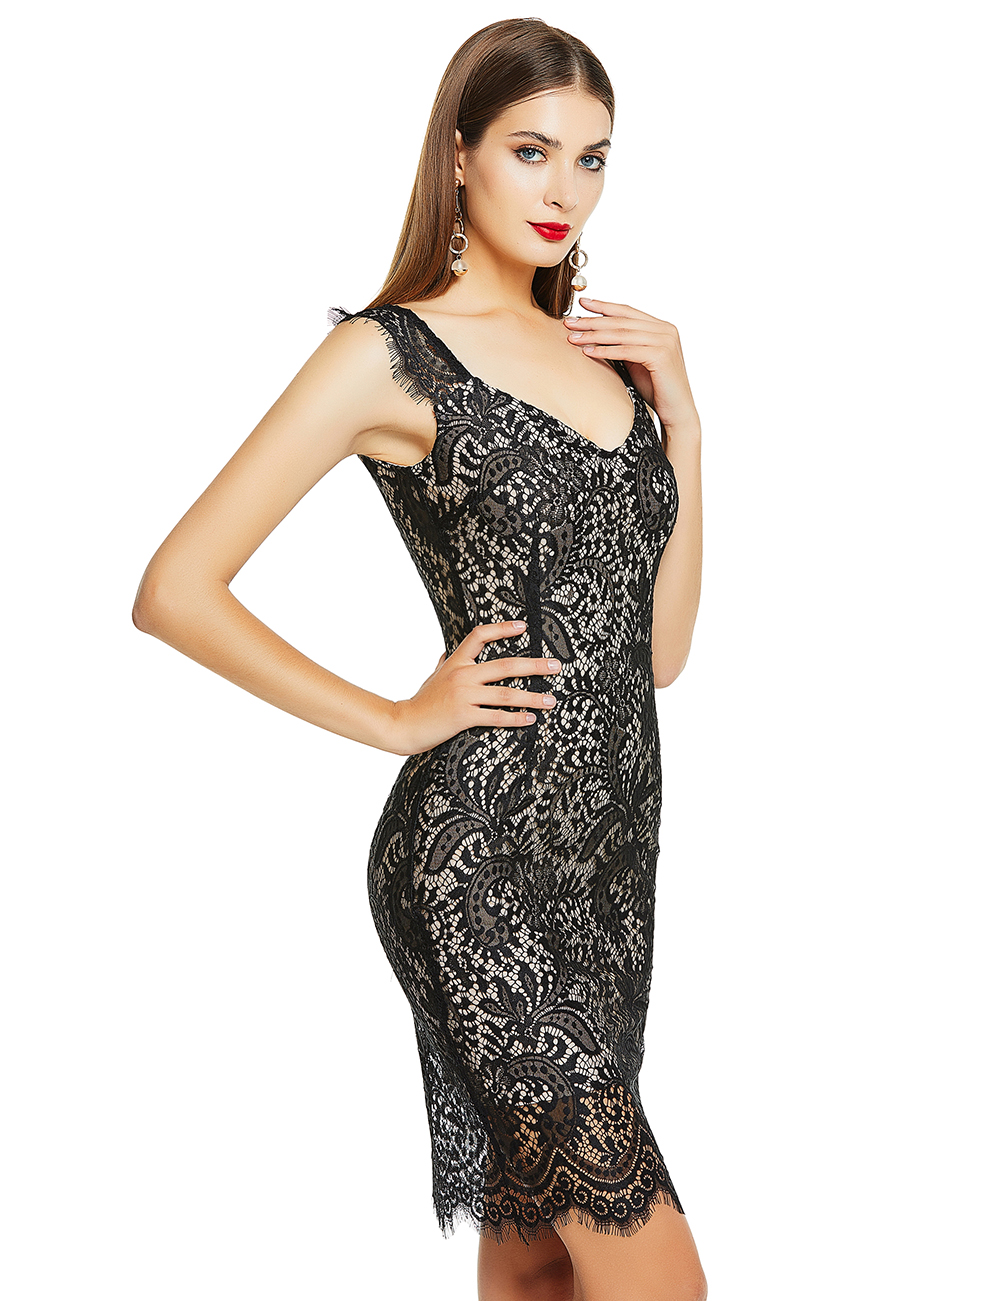 //cdn.affectcloud.com/hexinfashion/upload/imgs/Dress/Bandage_Dress/VZ191038-BK1/VZ191038-BK1-201911015dbbe2fc8f44a.jpg